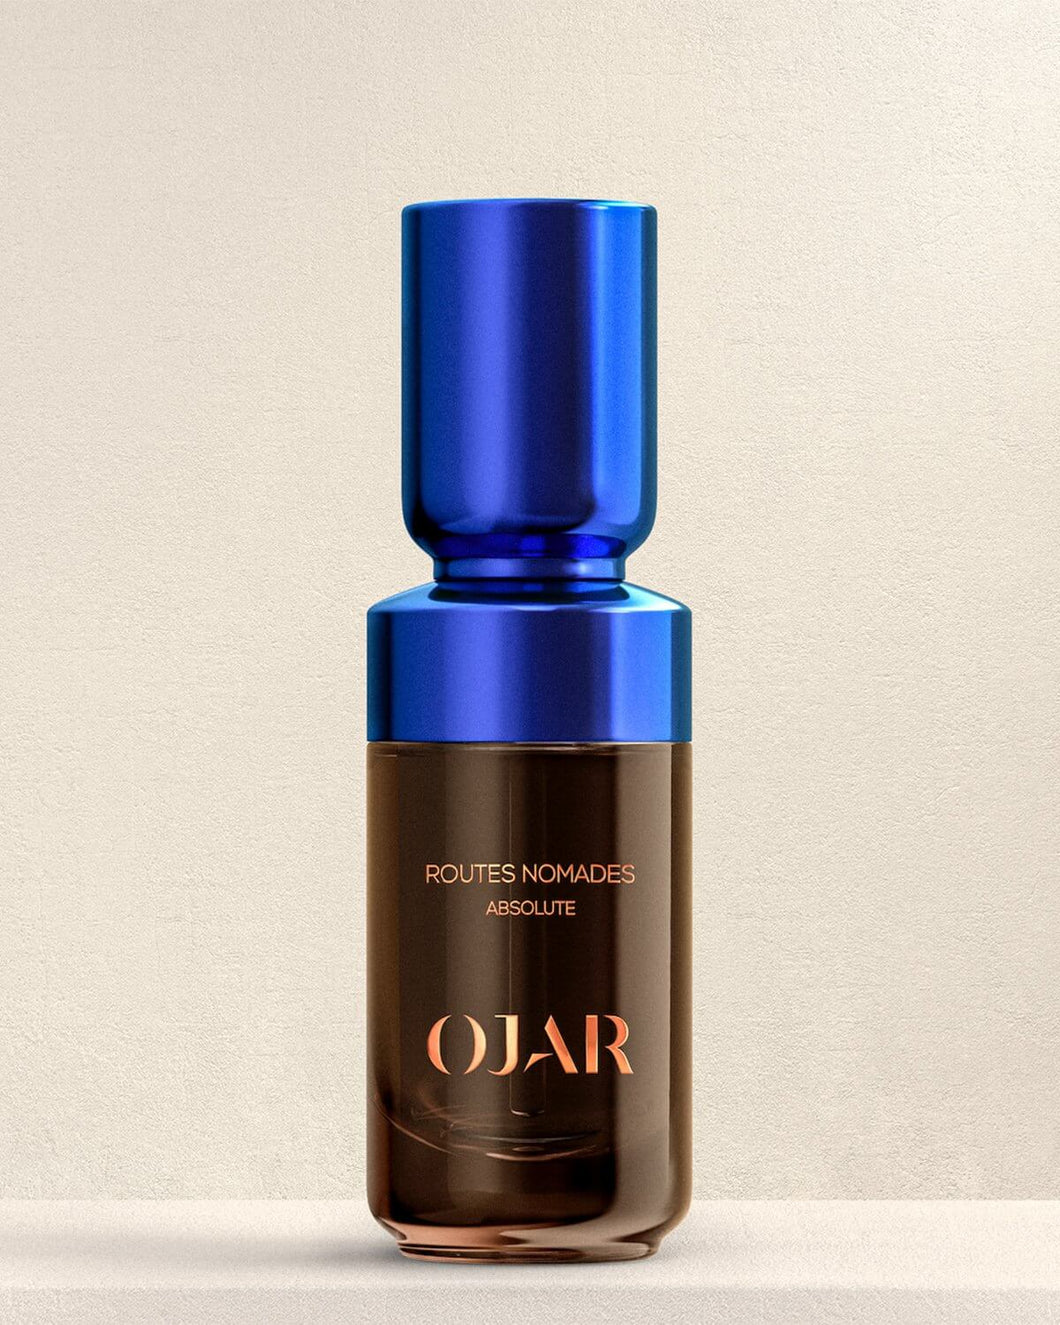 OJAR Absolute Routes Nomades Perfume